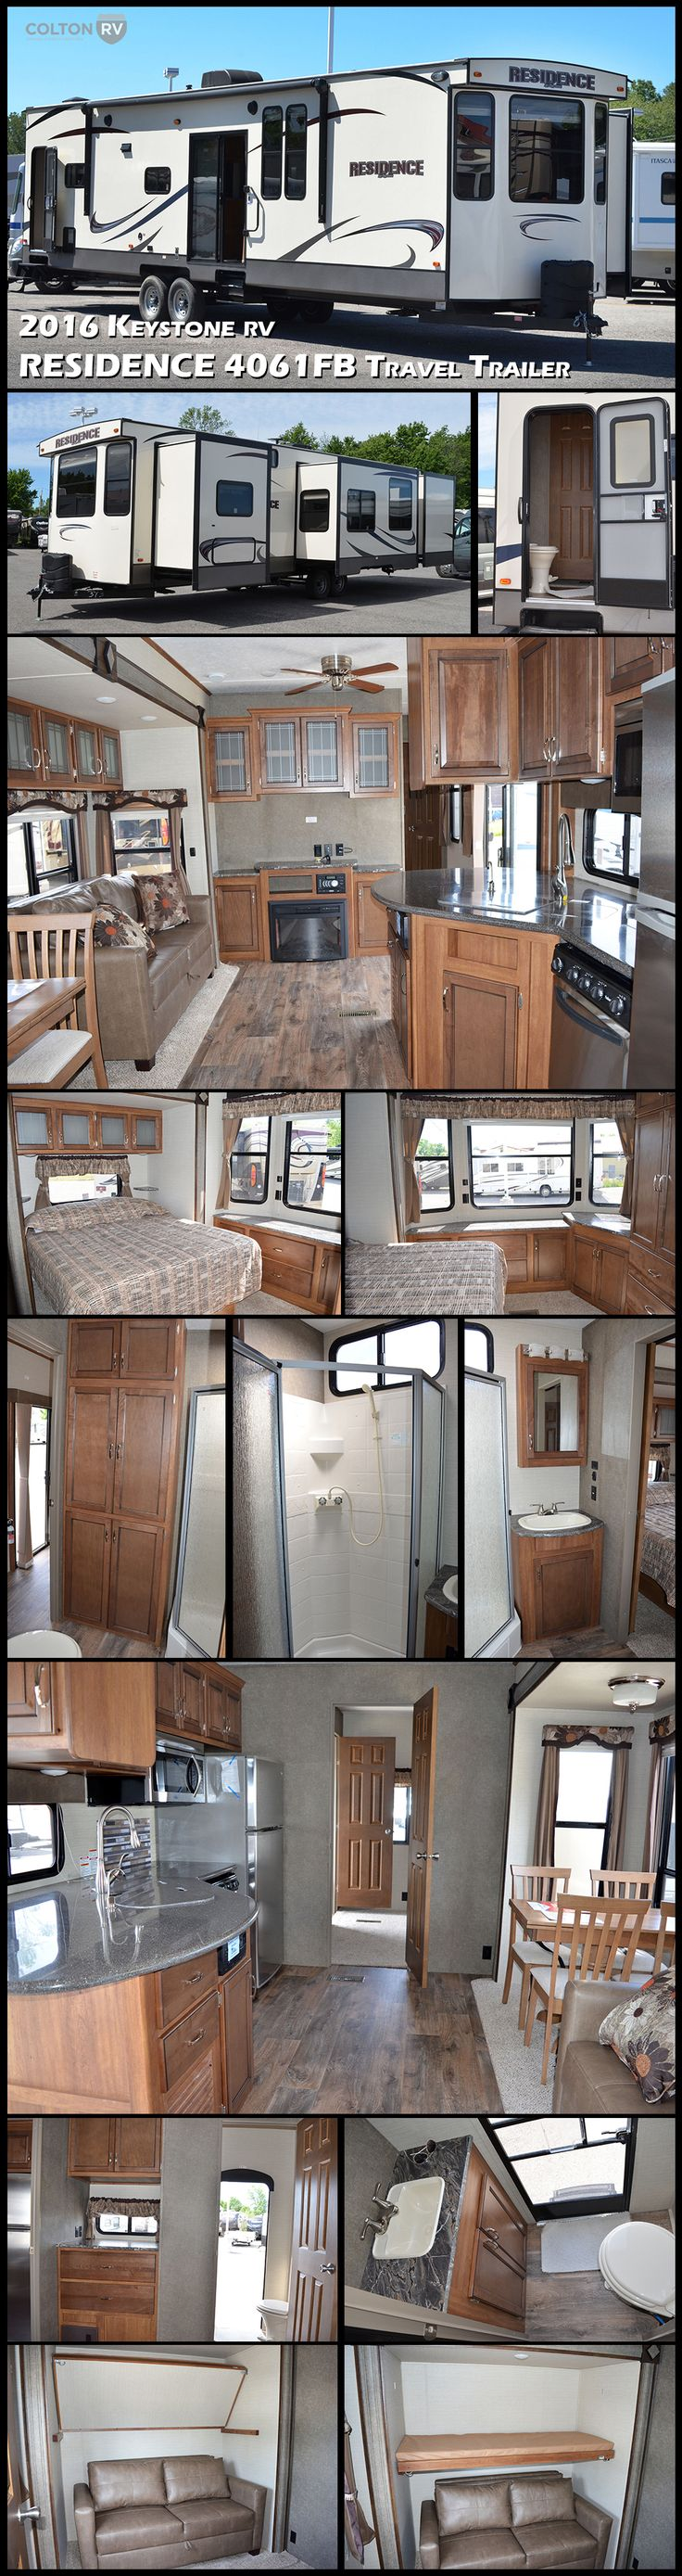 Your home away from home…the KEYSTONE RV RESIDENCE 4061FB Destination Travel Trailer. You will love the queen master suite up front with its large gorgeous windows, dresser and wardrobe with access to a bathroom. While the rear bunk room features an air bed sofa with flip down bunk above, entertainment, storage and a half bath. In the main living area there is a large sliding glass patio door allowing natural light fill the room.